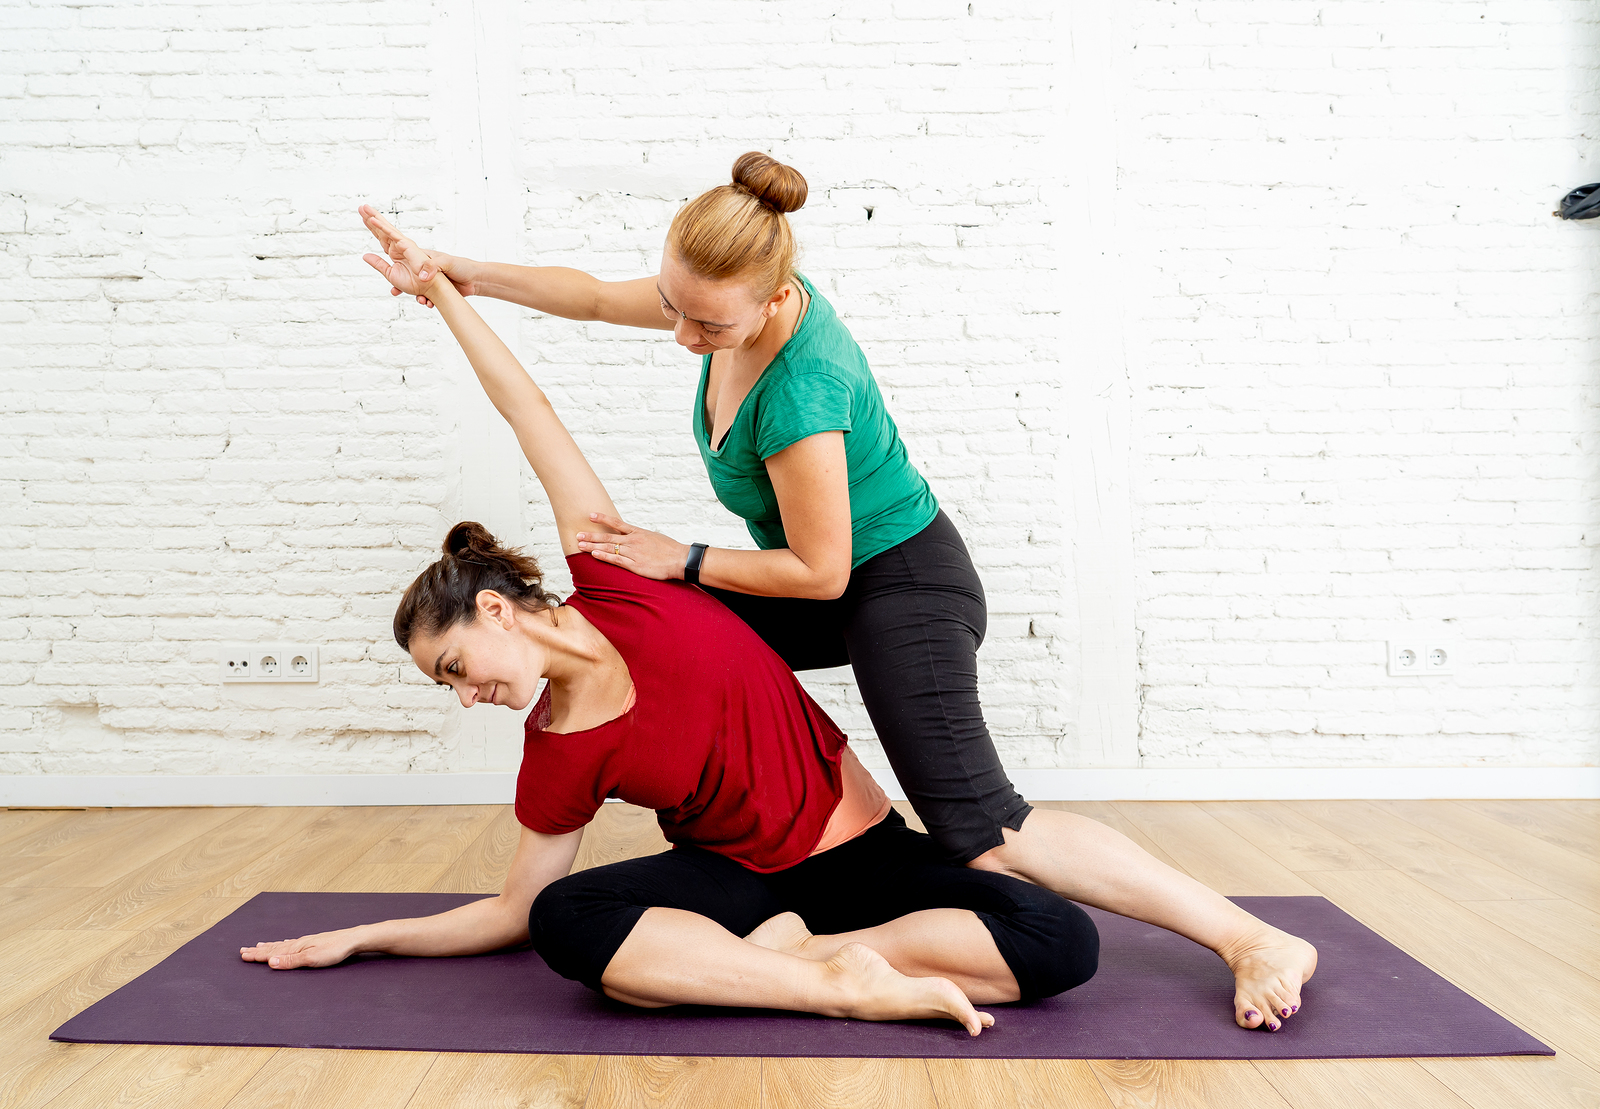 Jolene Cherry Shares 5 Social Media Tips For Yoga Instructors